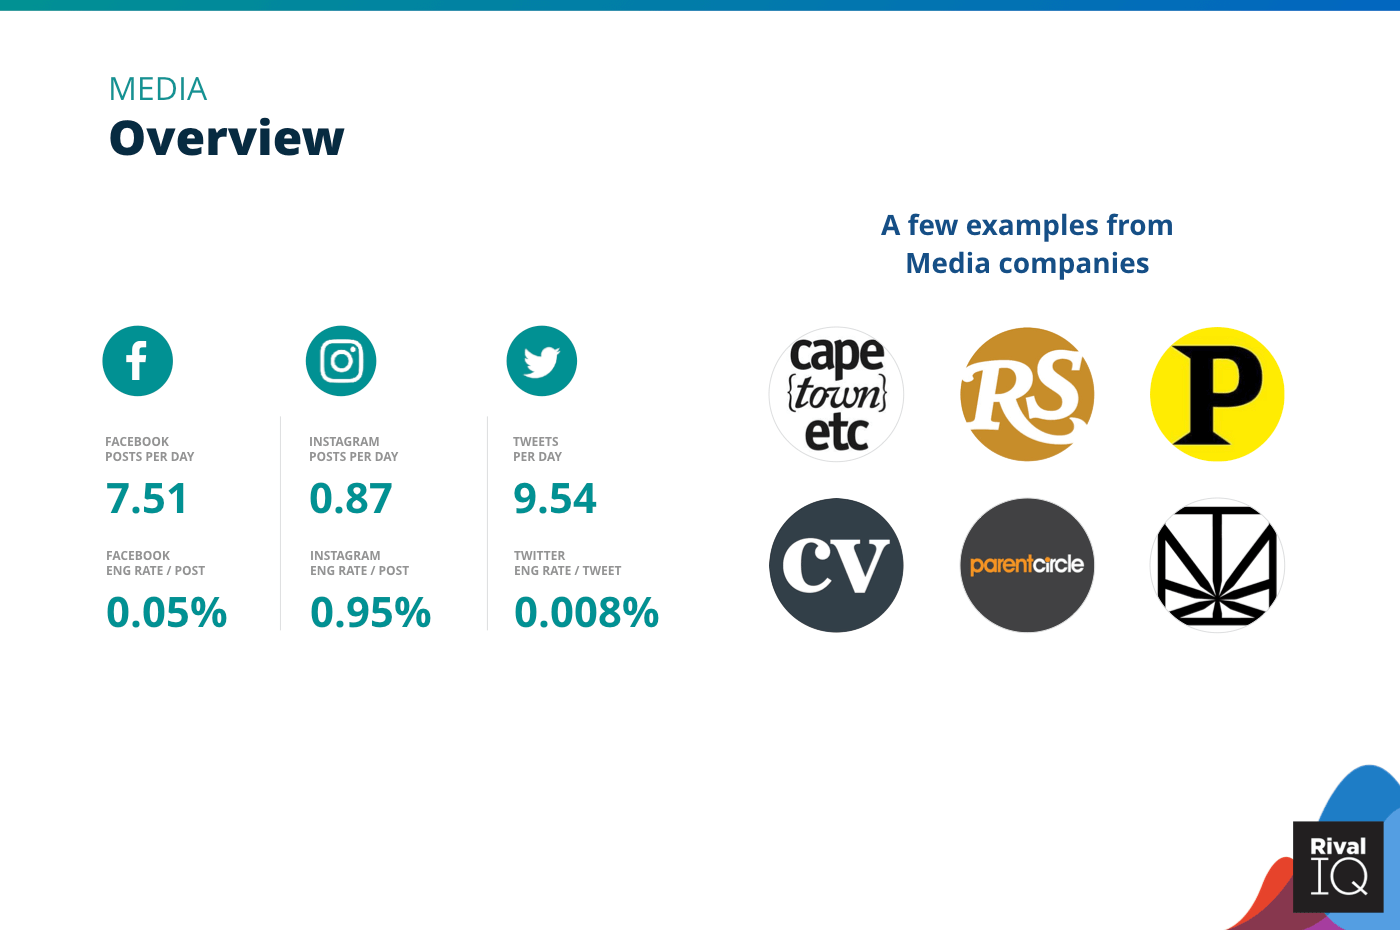 Overview of all benchmarks, Media